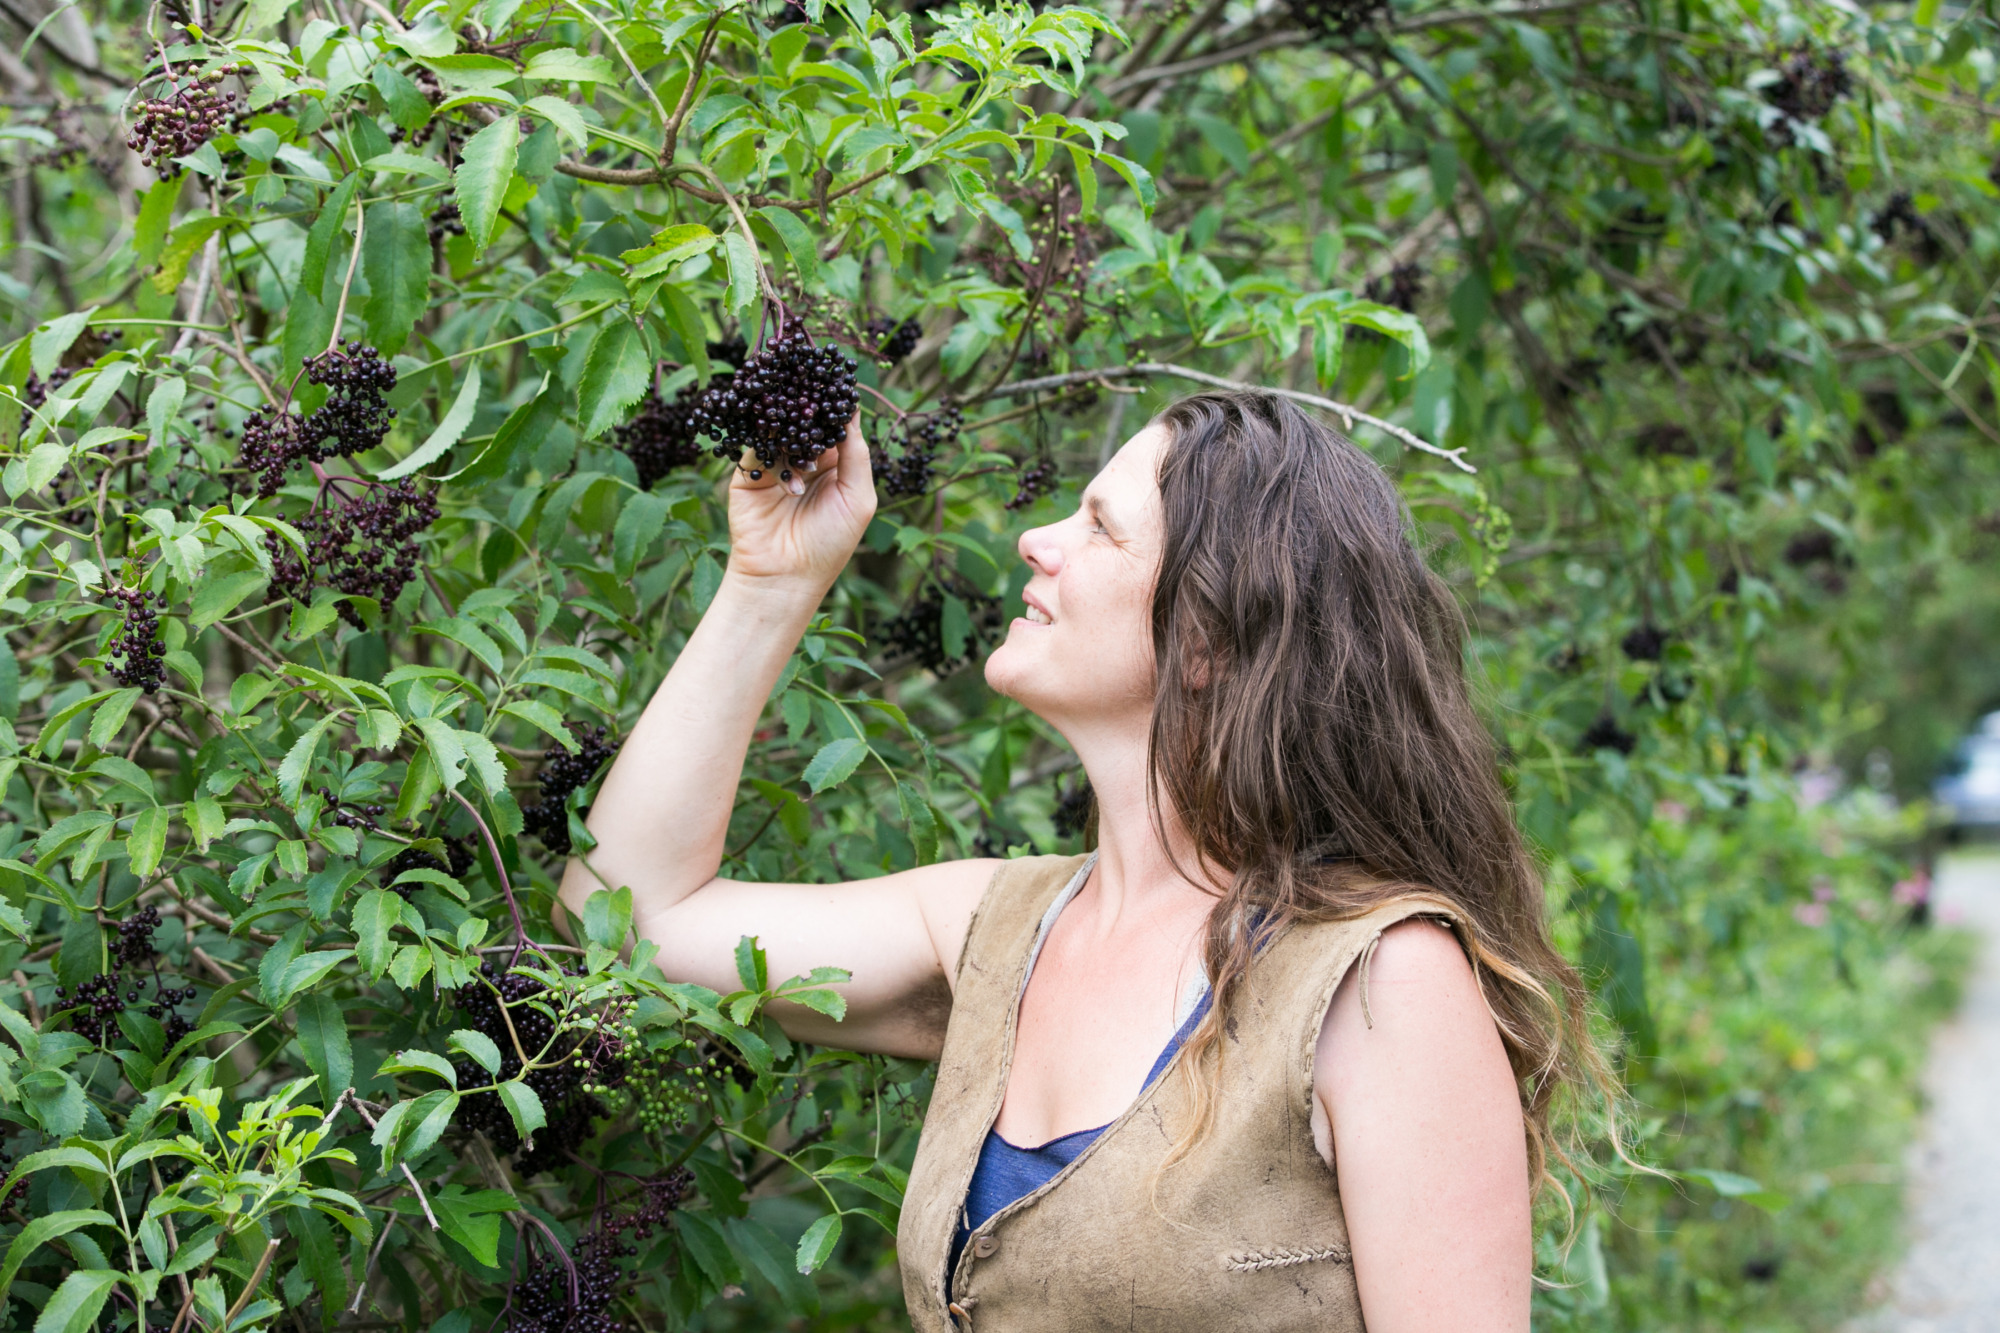 permaculture teacher harvesting elderberries